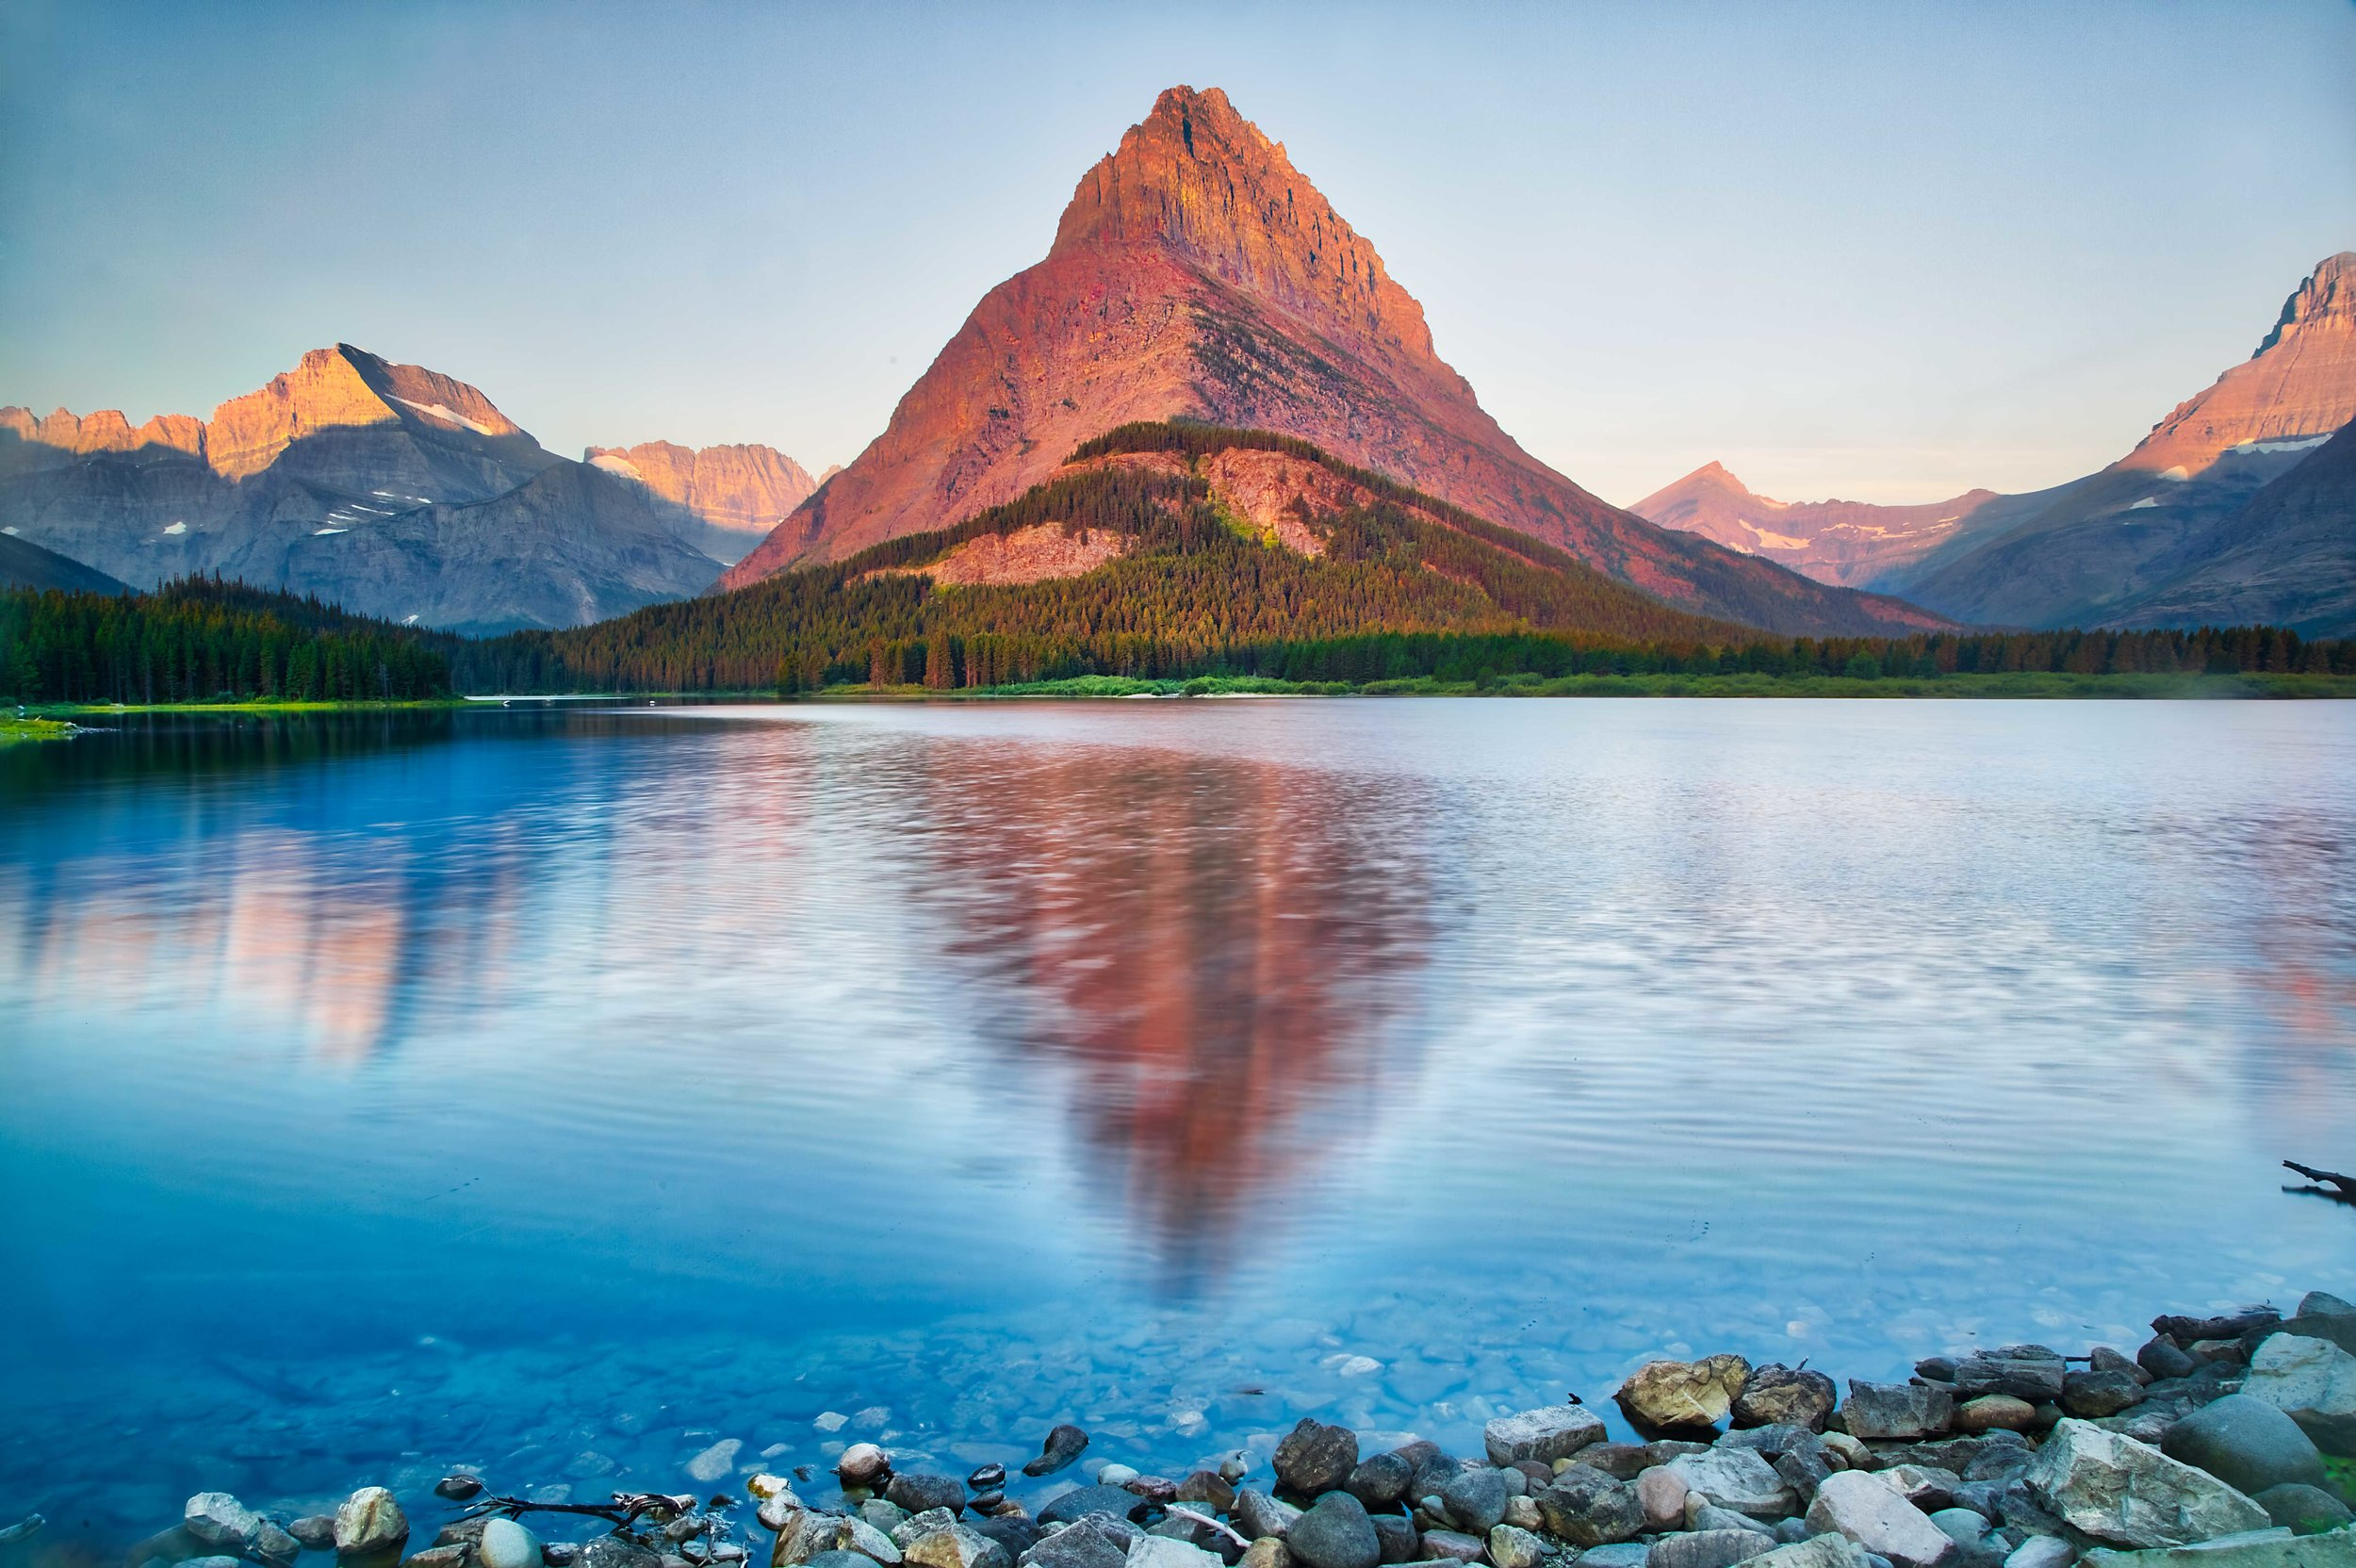 Swiftcurrent-morning-2_edit.jpg